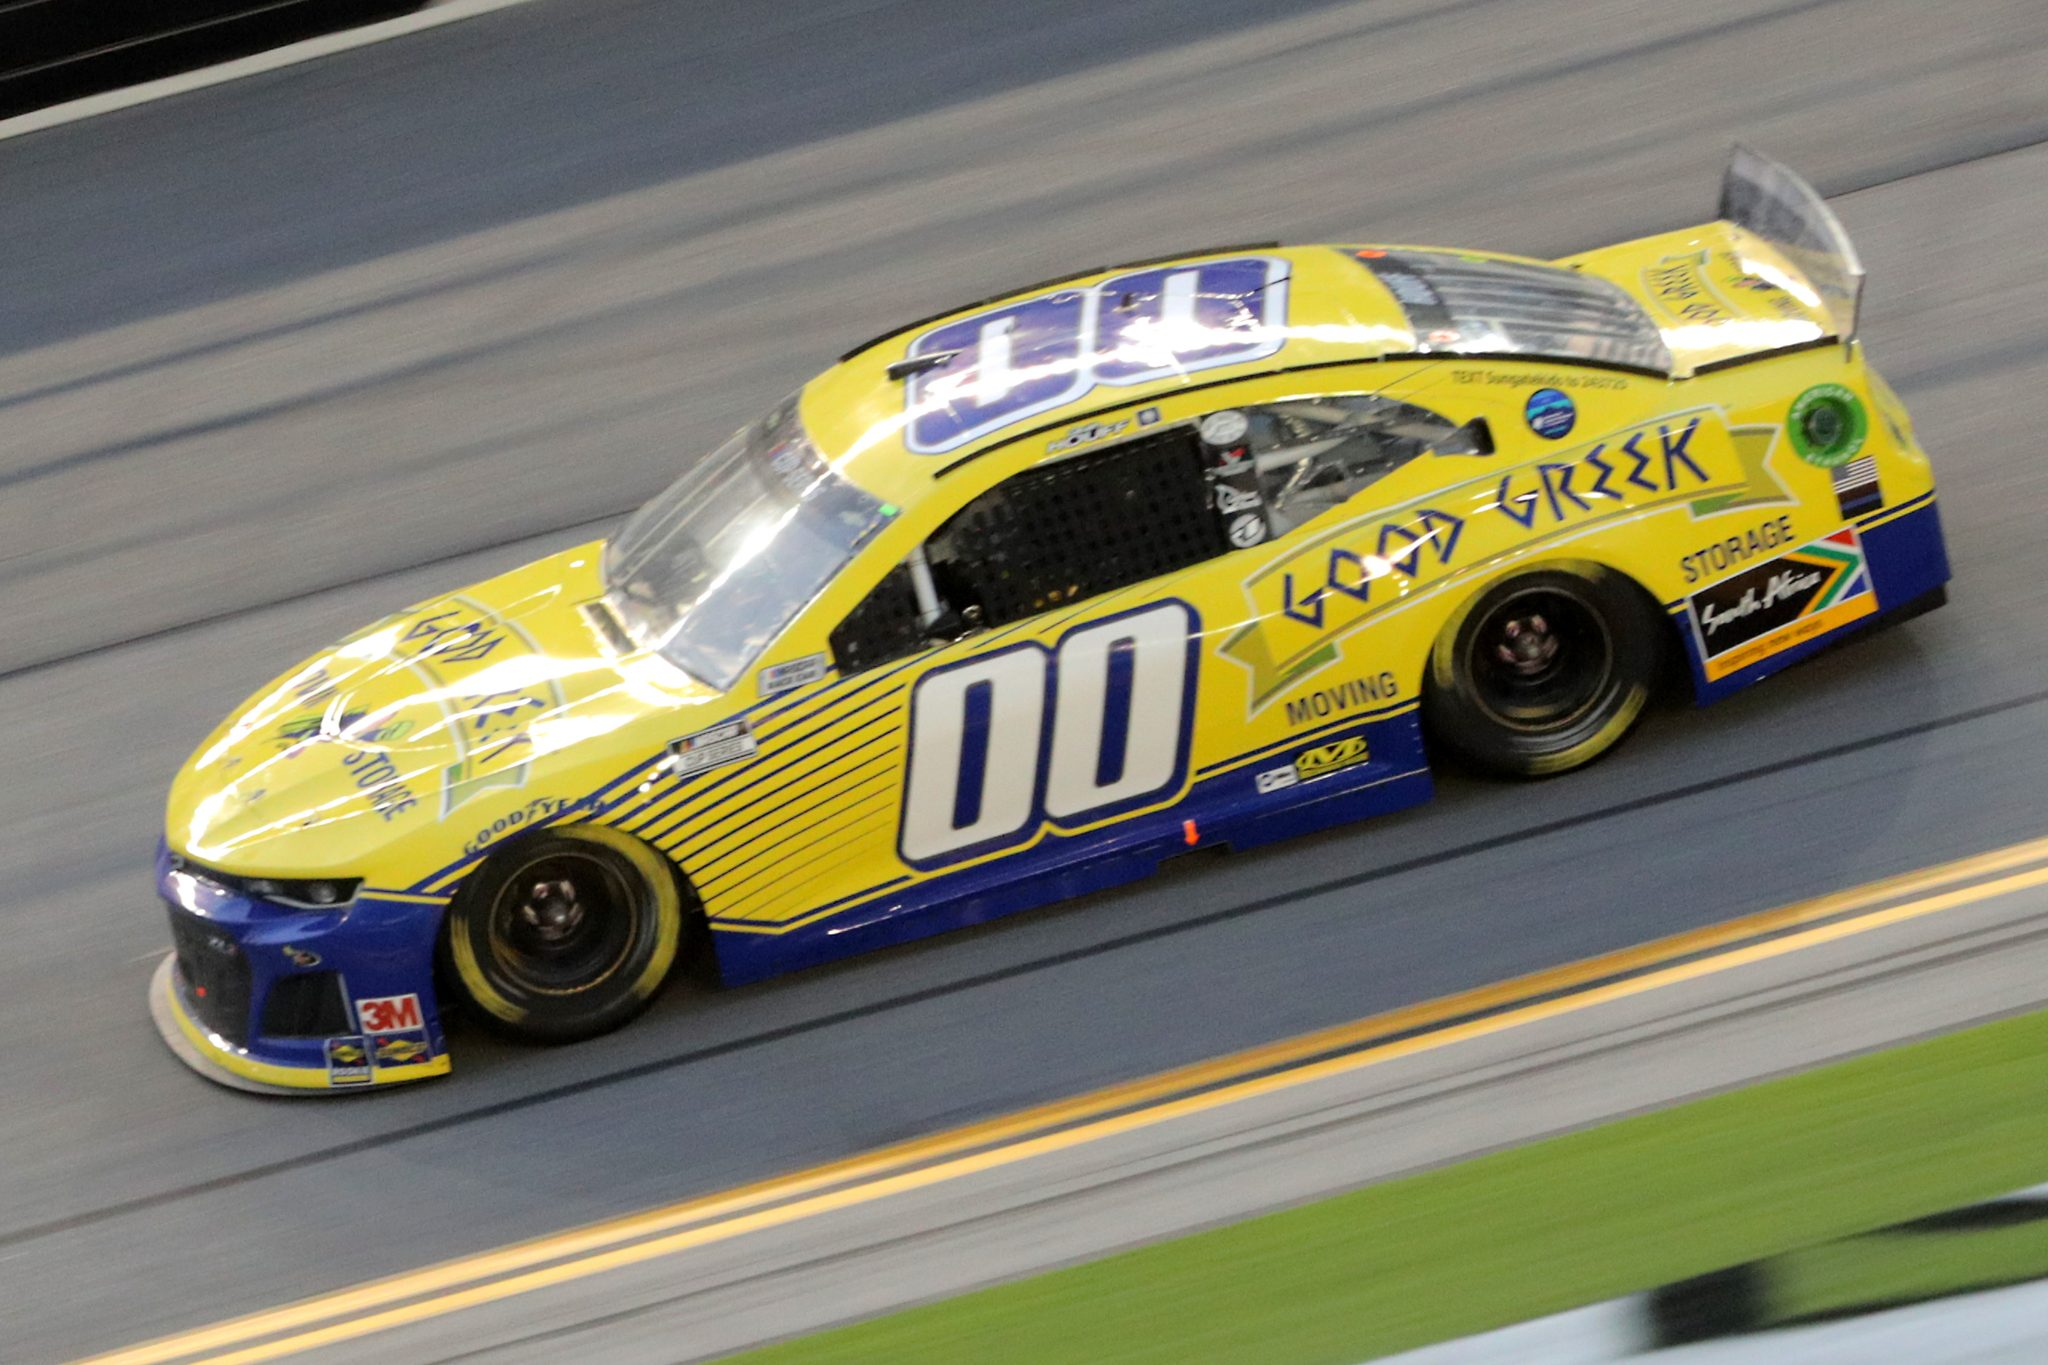 DAYTONA BEACH, FLORIDA - AUGUST 29: Quin Houff, driver of the #00 Good Greek Movers Chevrolet, drives during the NASCAR Cup Series Coke Zero Sugar 400 at Daytona International Speedway on August 29, 2020 in Daytona Beach, Florida. (Photo by Chris Graythen/Getty Images) | Getty Images